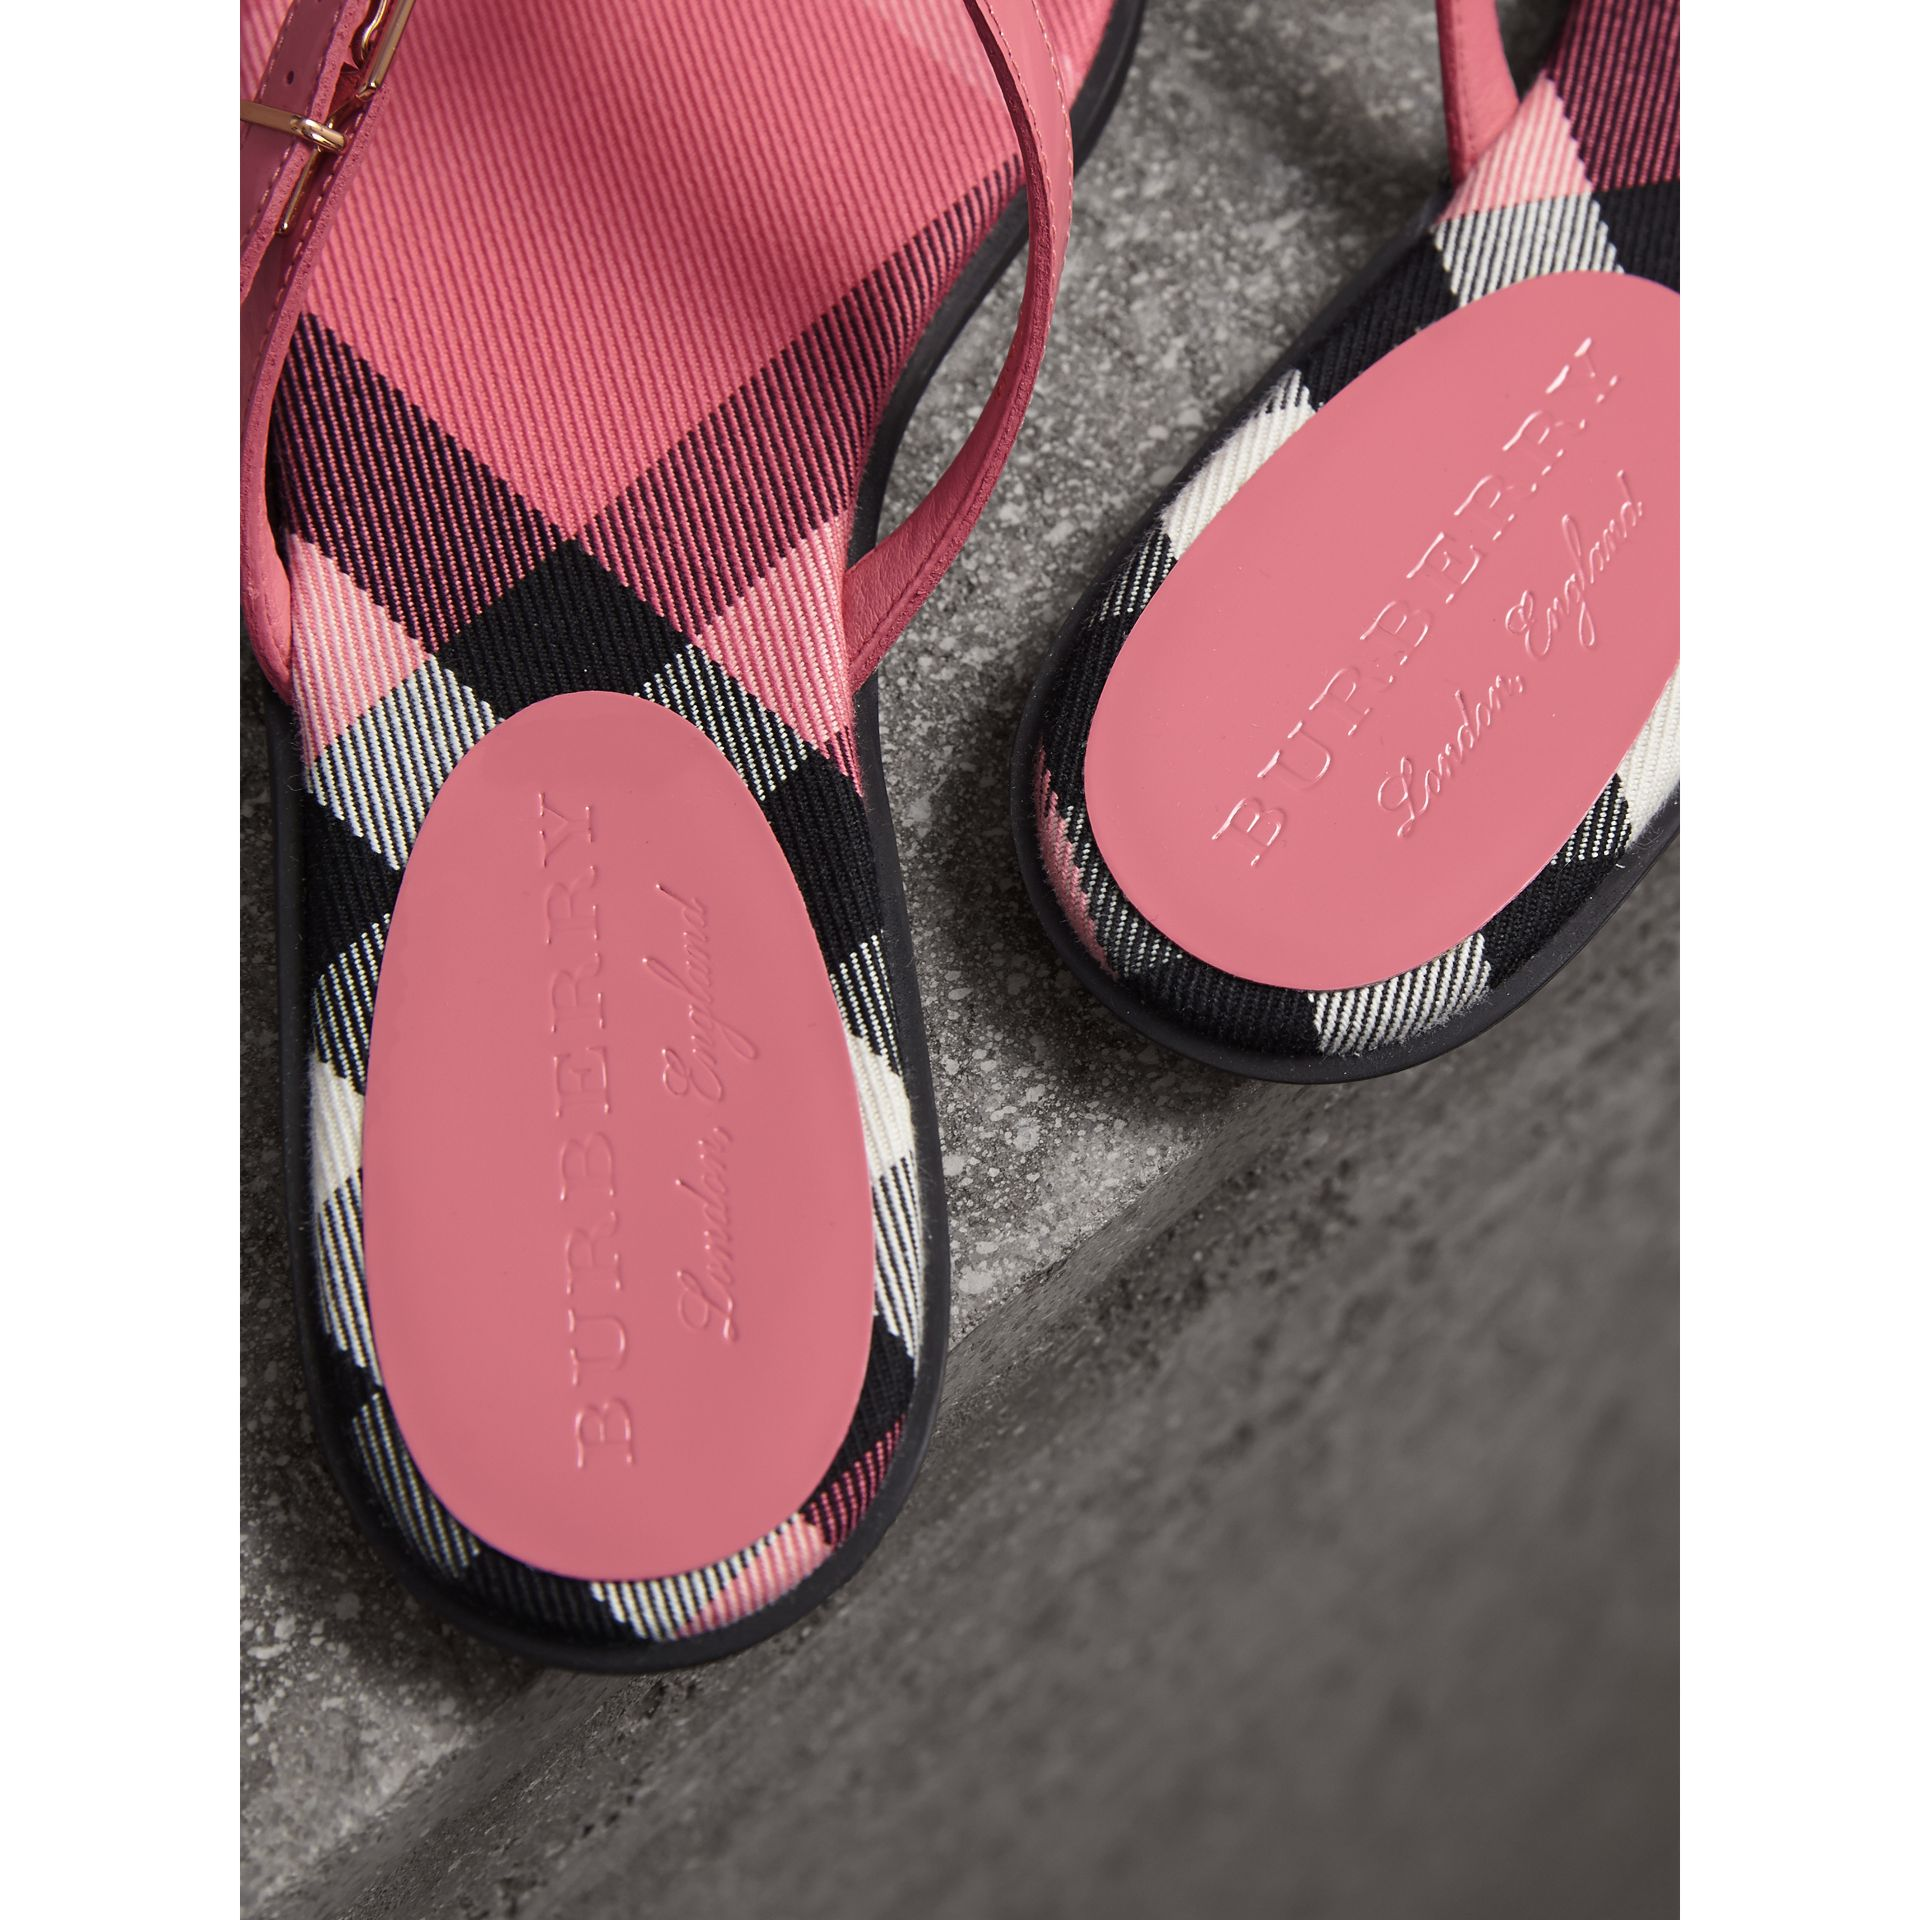 Sandales en tissu House check et cuir verni (Baie Rose) - Femme | Burberry - photo de la galerie 2